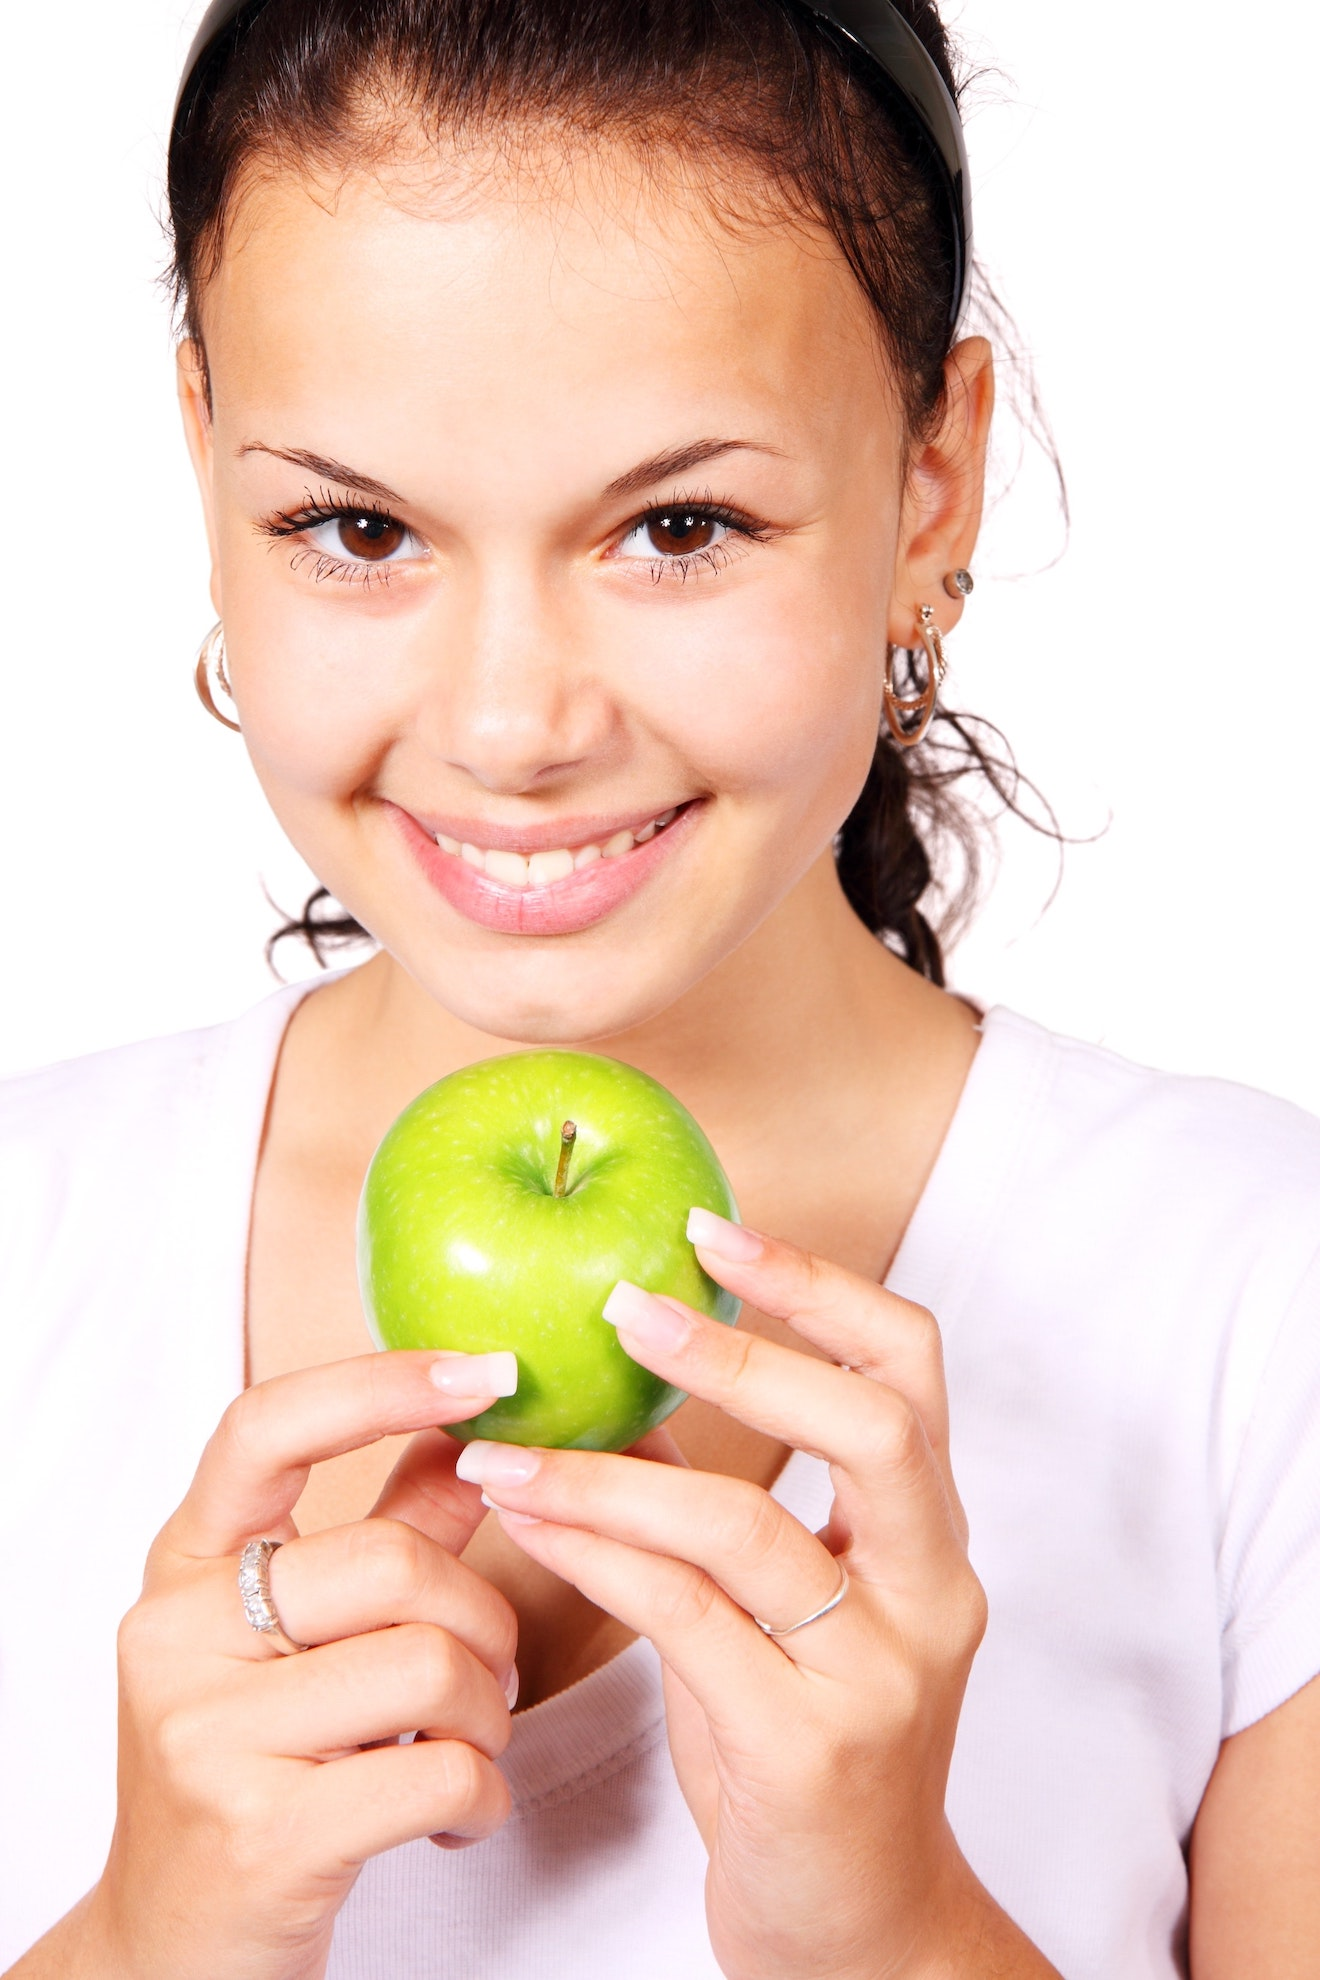 a women holding a green apple and smiling